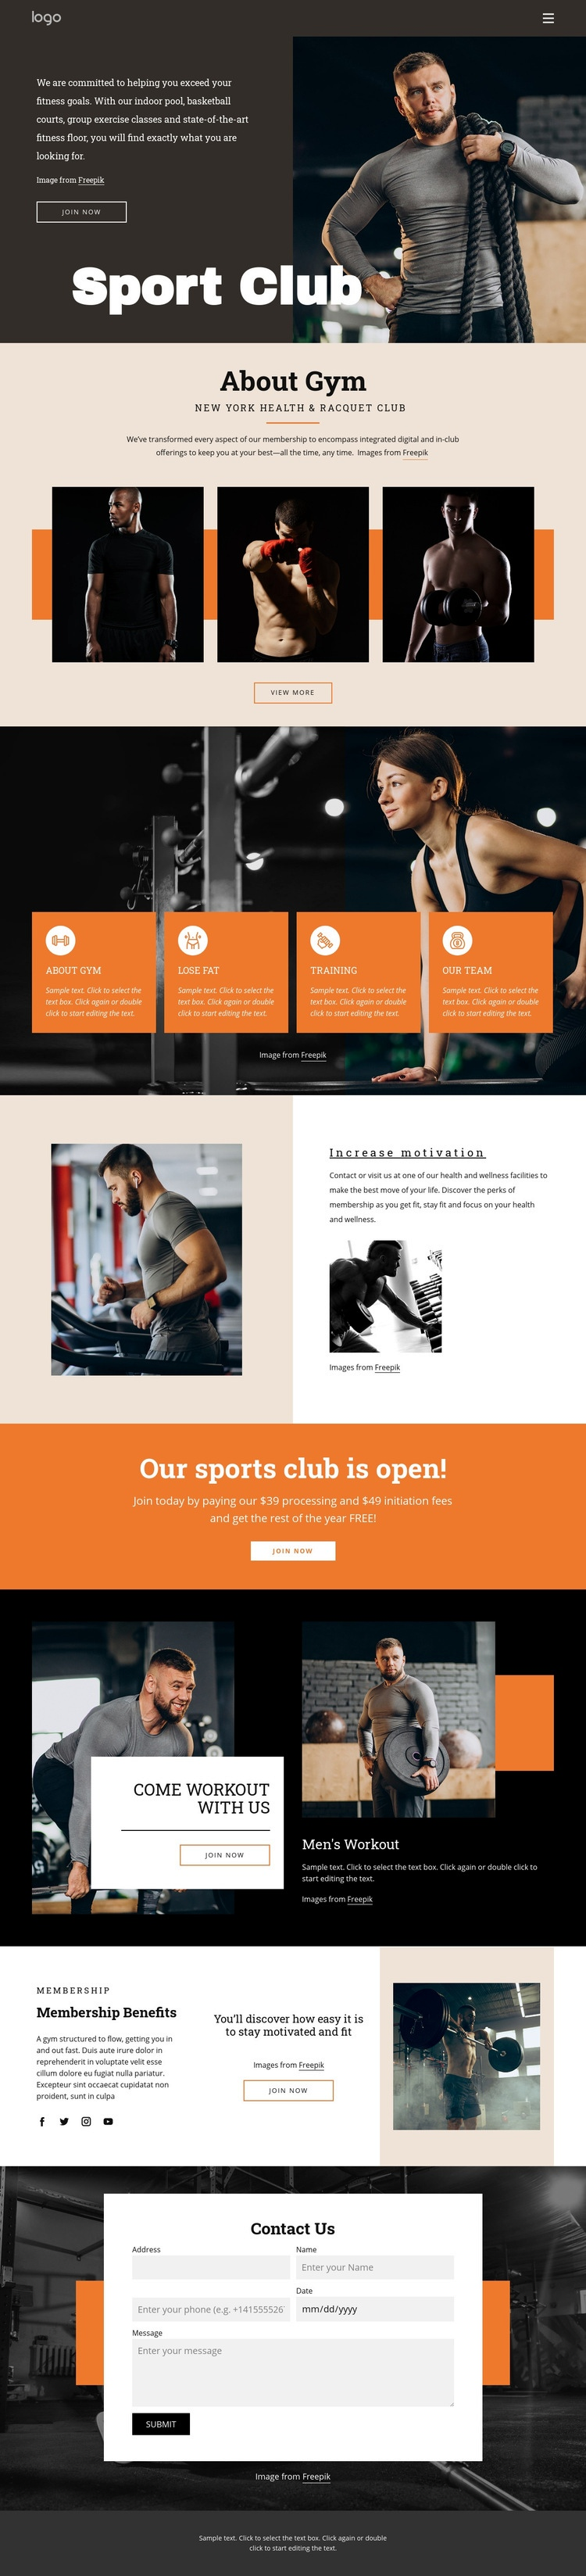 Convenient personal training programs Html Code Example